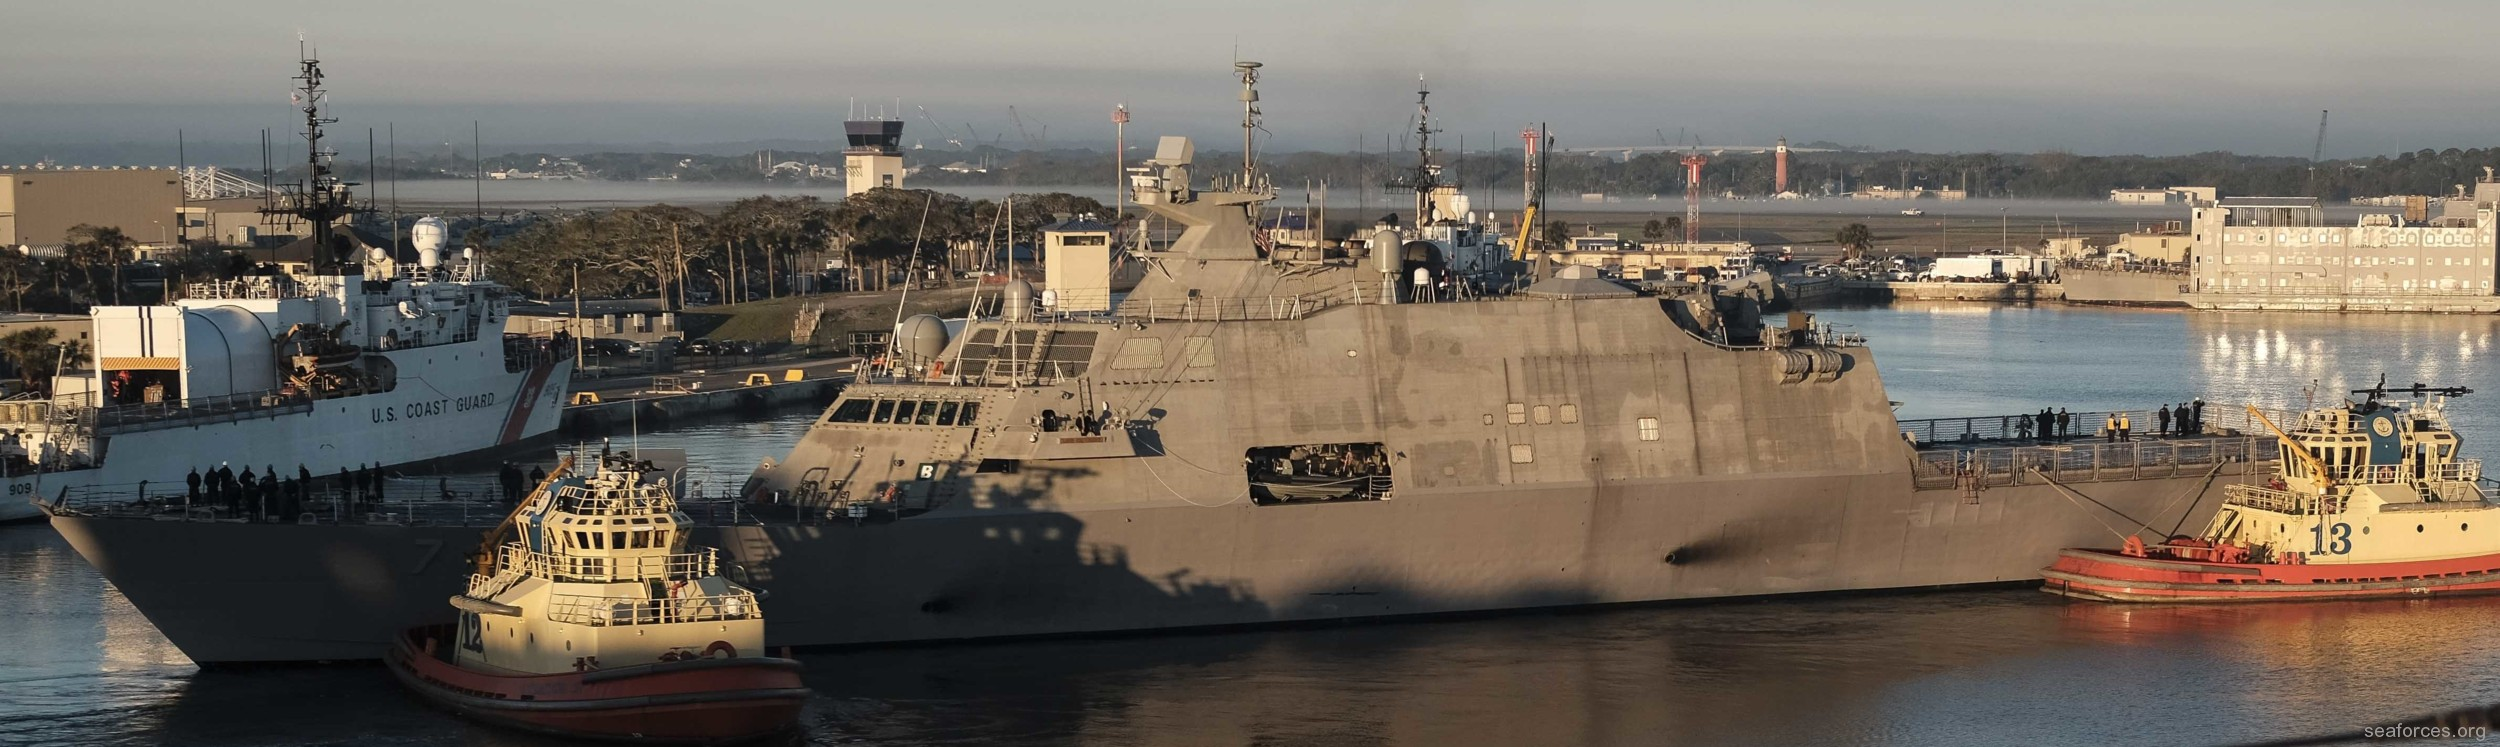 USS Detroit LCS-7 Freedom class Littoral Combat Ship US Navy